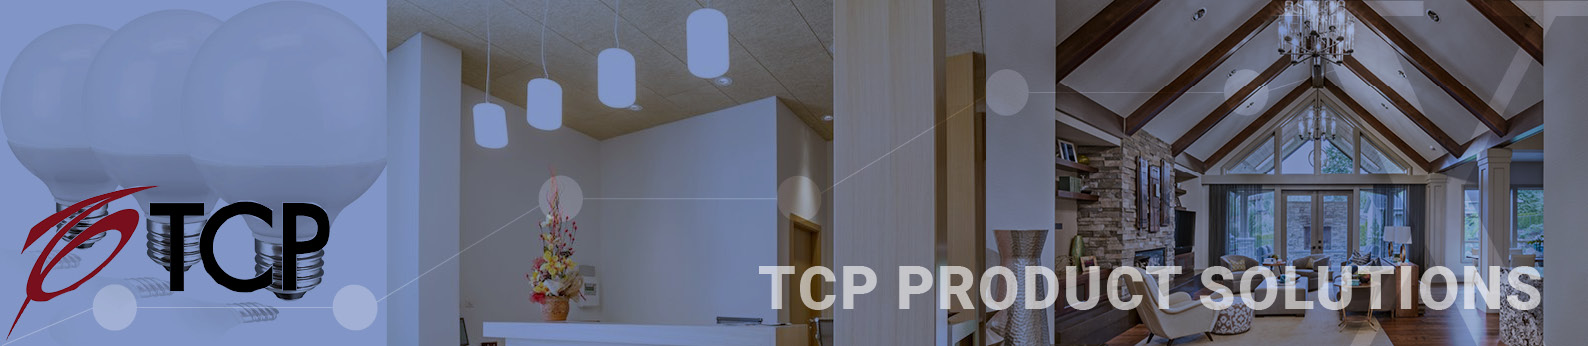 TCP Product Solutions from Connexion